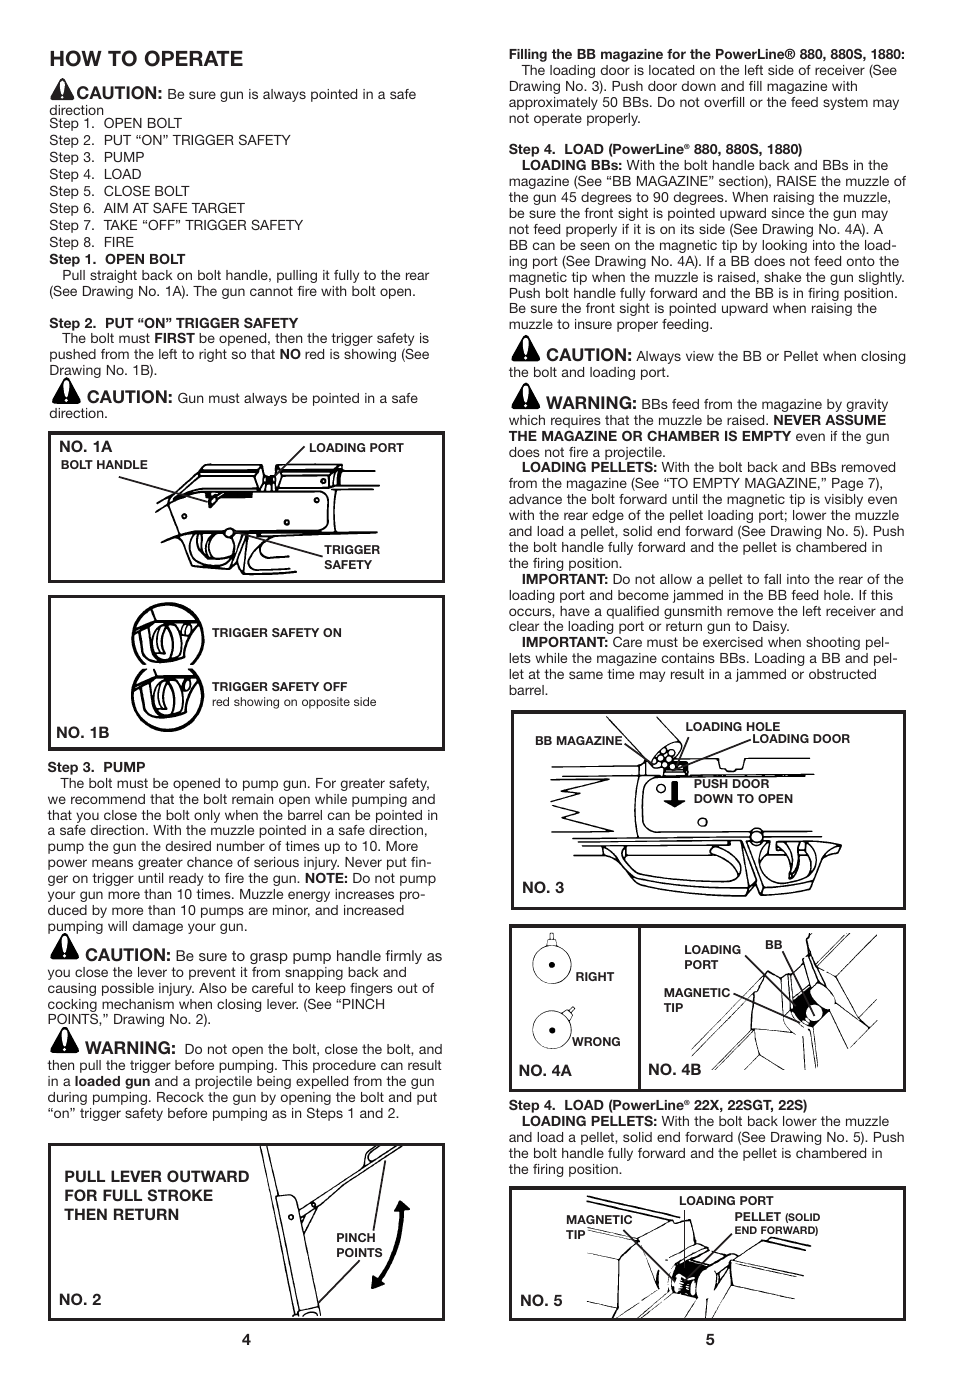 How to operate | Daisy PowerLine 880 User Manual | Page 3 ... Daisy Powerline Schematic on daisy model 881 pump seals, daisy powerline parts, daisy powerline 880 service, daisy model 880 seal parts, daisy powerline 880 box, daisy powerline 880 repair, daisy powerline 880 modification, daisy 880 repair kit, daisy powerline 881, daisy 880 compression repair seals, daisy powerline 880 hunting, daisy 880 air rifles schematics, daisy proline 880 parts, daisy model 25 schematic, daisy 880 bb gun, daisy bb gun schematic, daisy model 880 parts list, daisy red ryder schematic, daisy powerline 880 assembly, daisy powerline pistol,